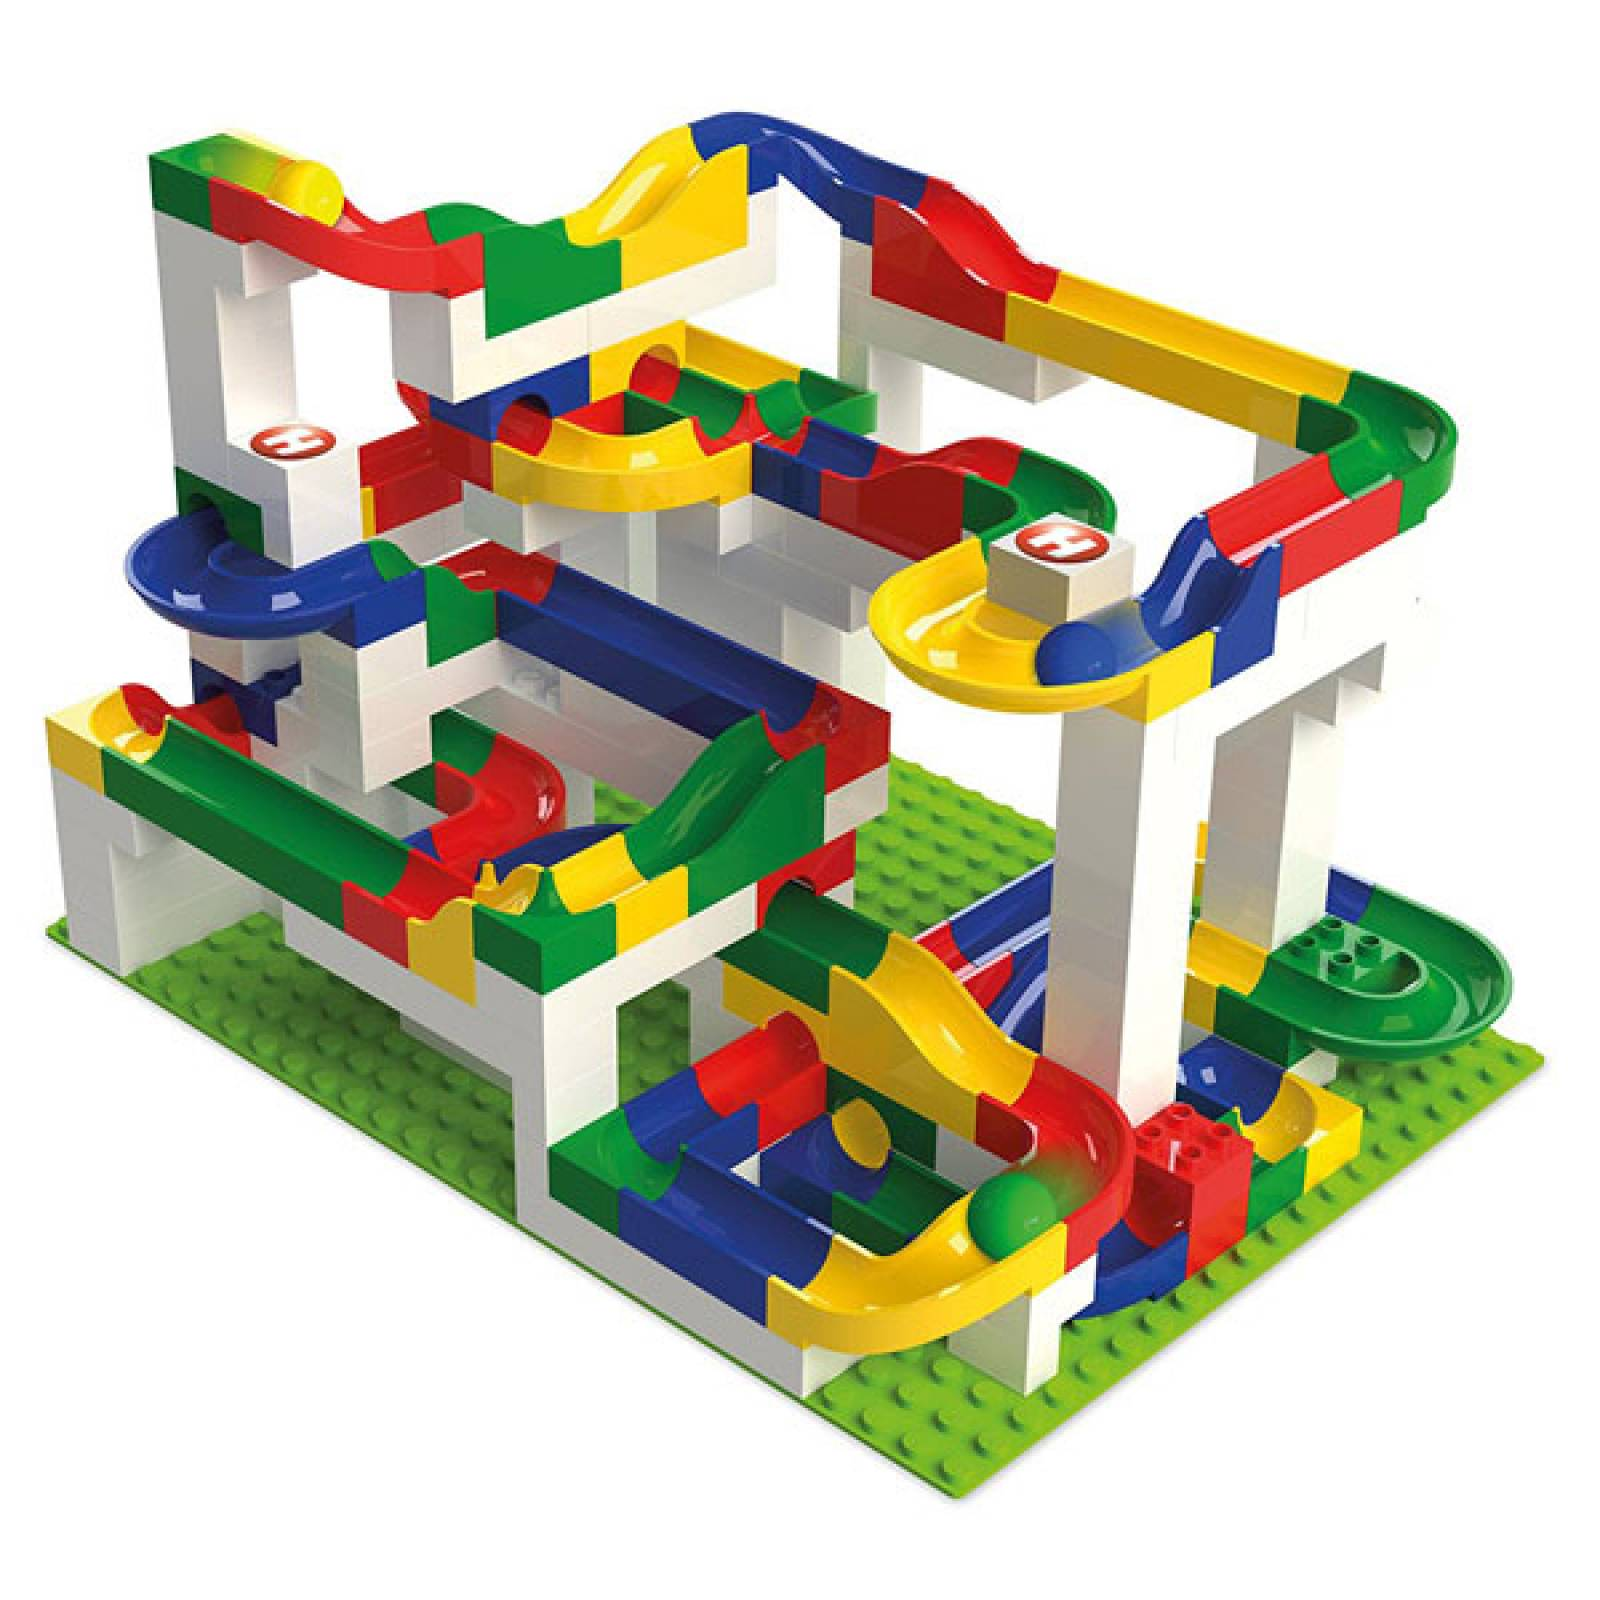 Hubelino 200pc Marble Run Construction Set  4+ thumbnails